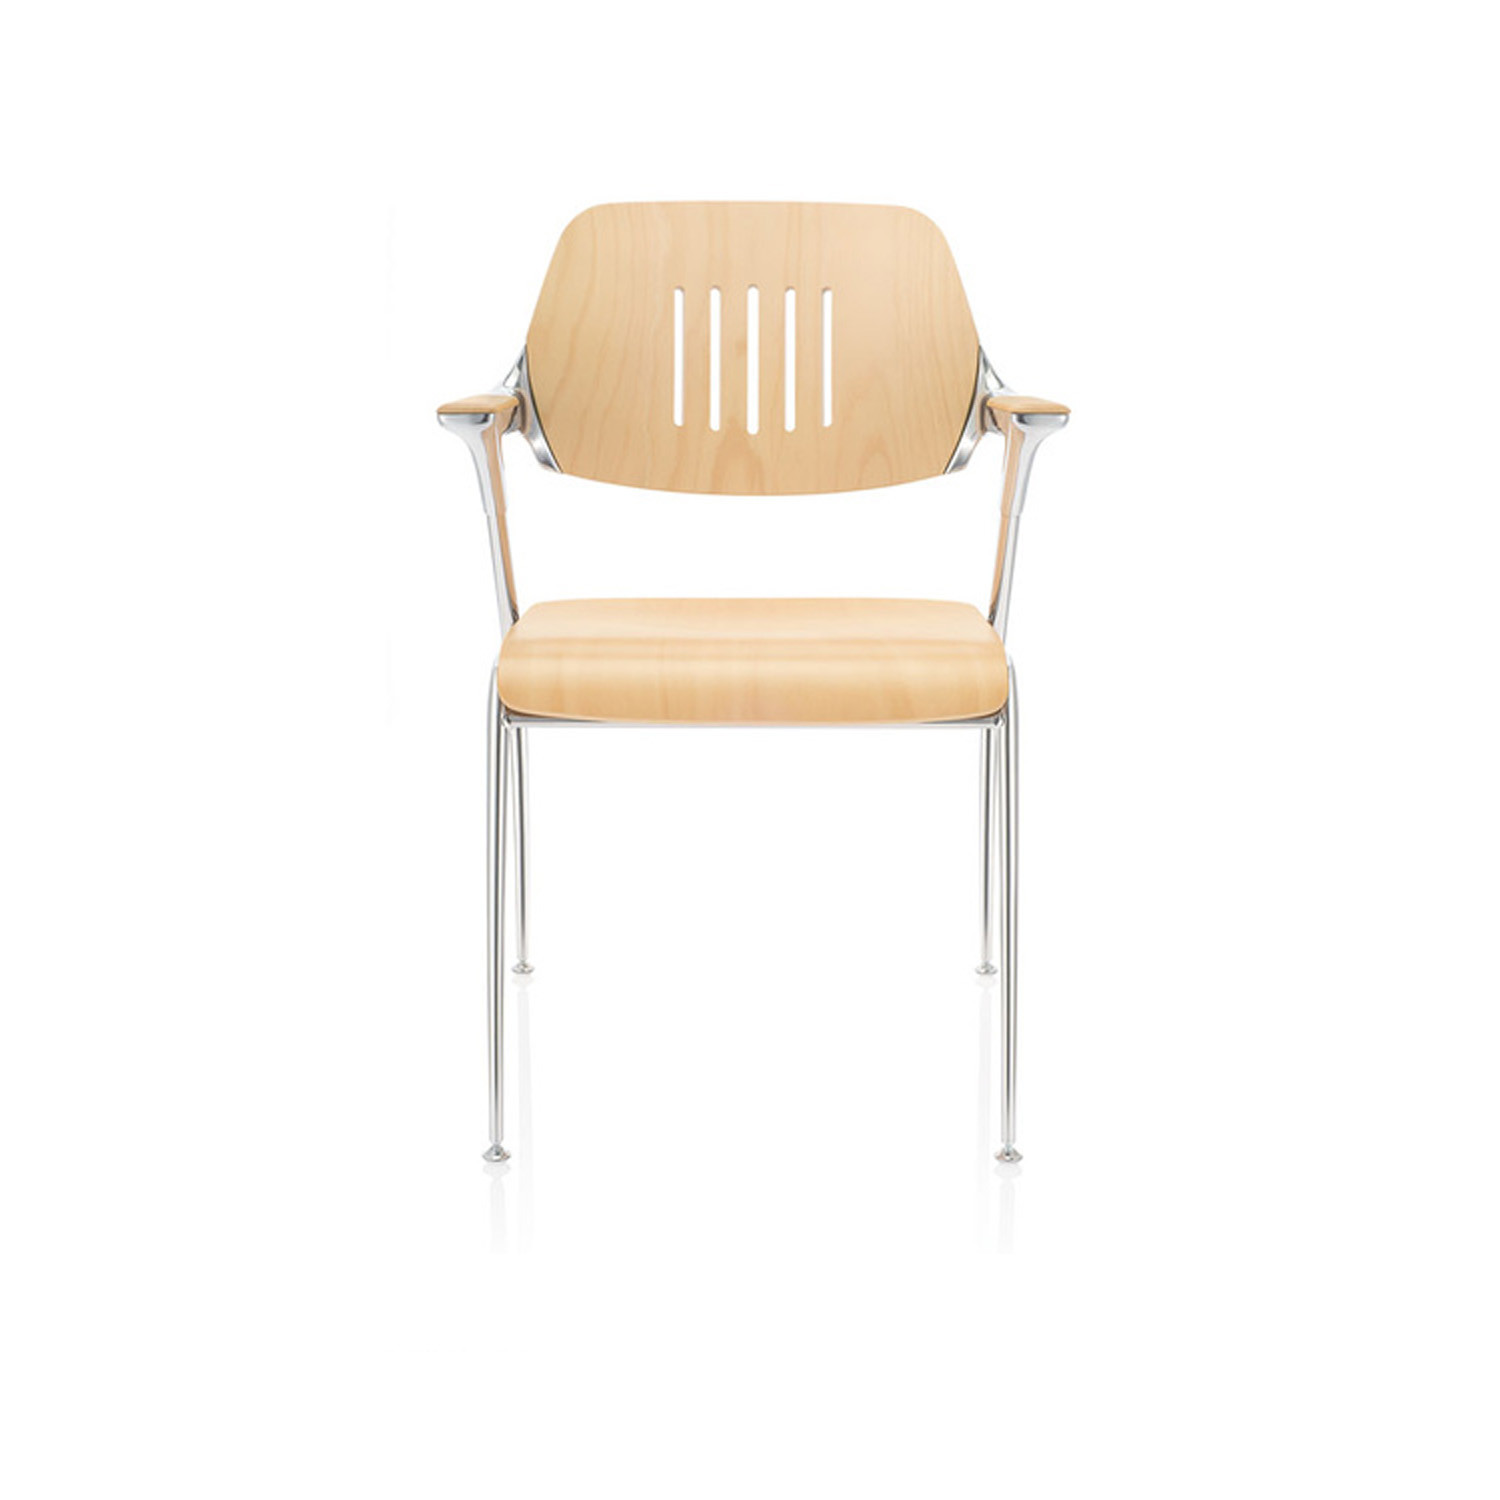 Golf Chair in solid beech with clear lacquer finish